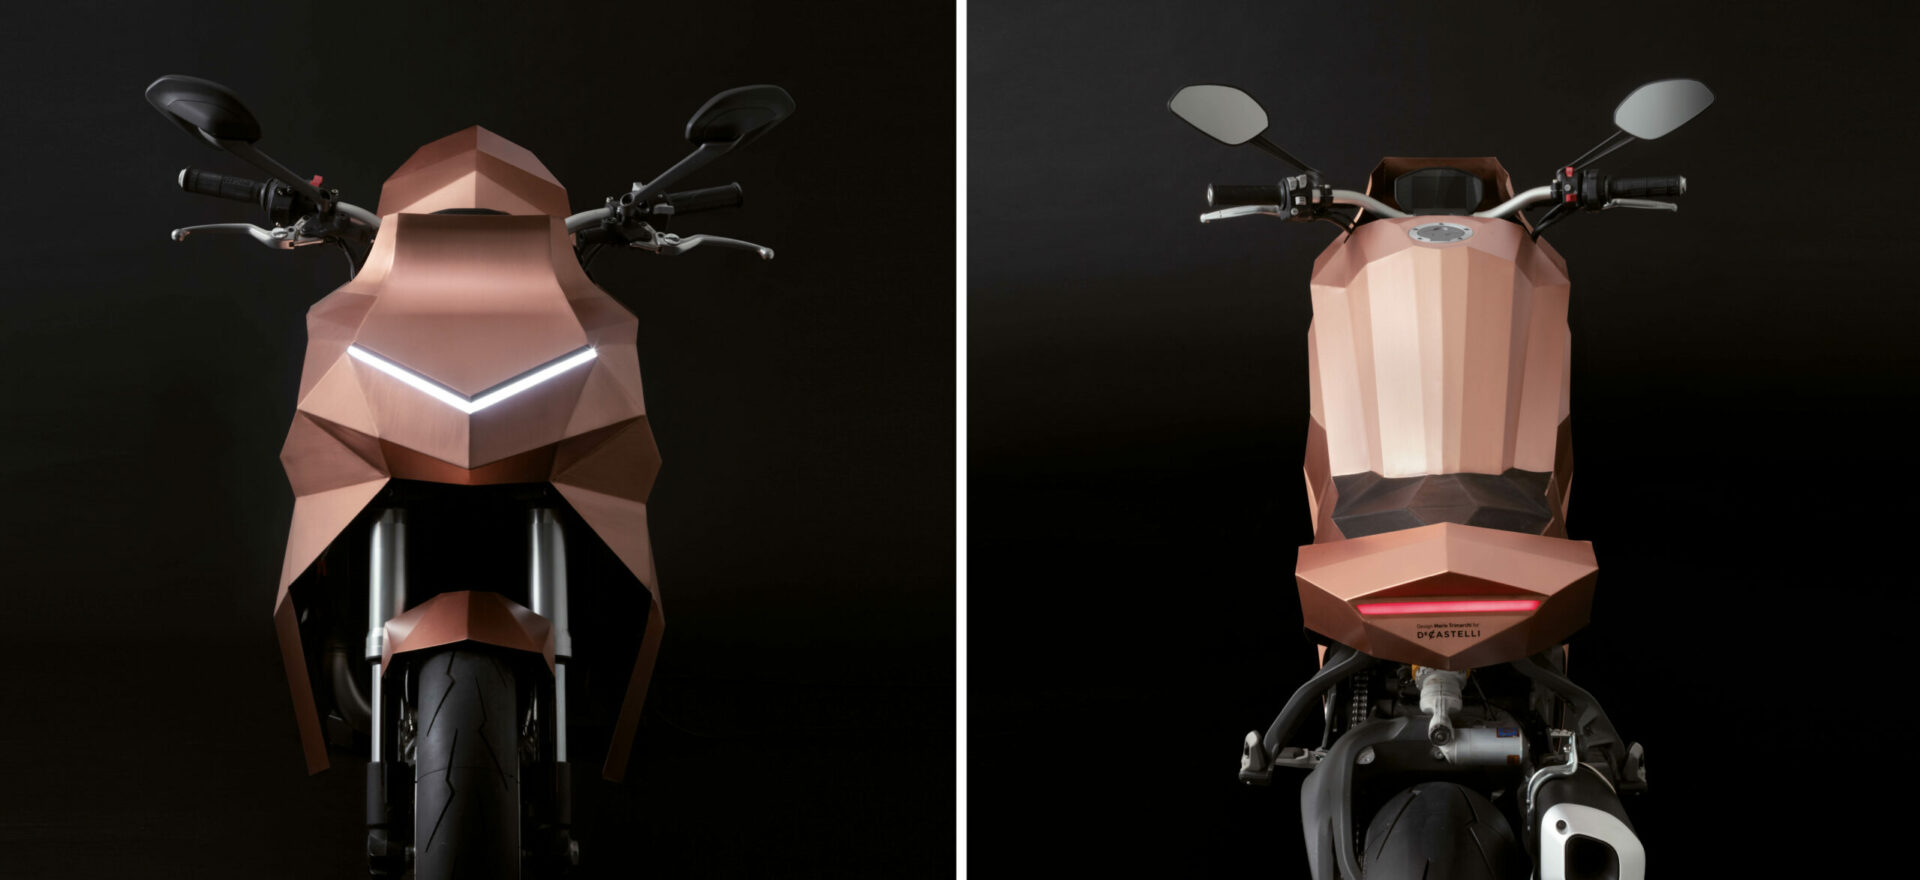 Front and back of a standalone copper motorbike built on a Ducati Monster chassis in a black background with lights on.